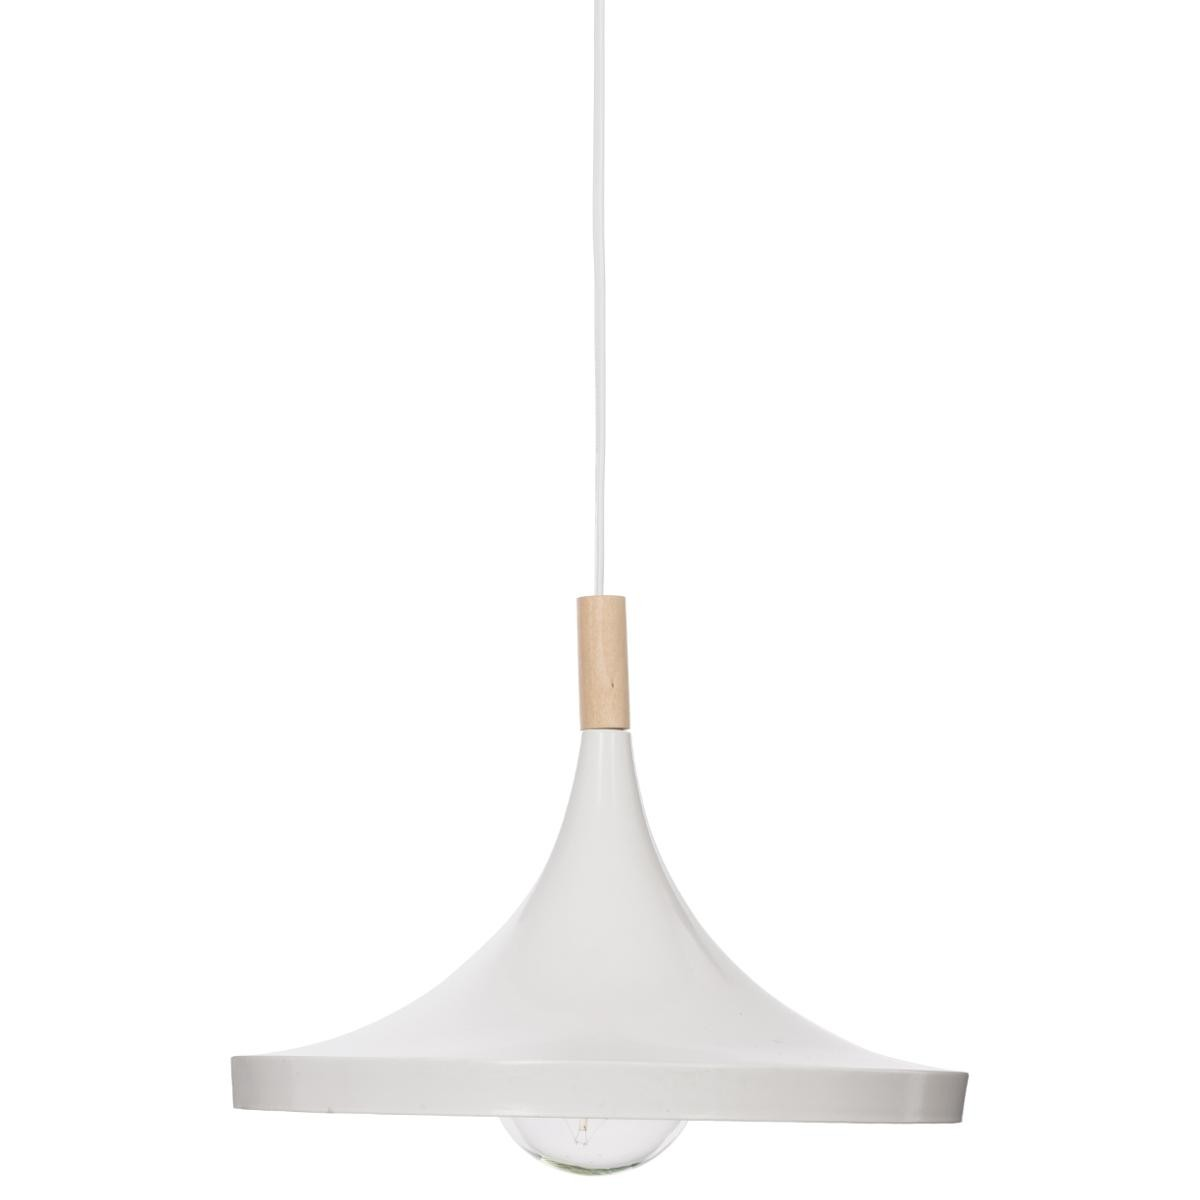 Suspension Blanche Suspension Blanche Bois Métal Ø32cm